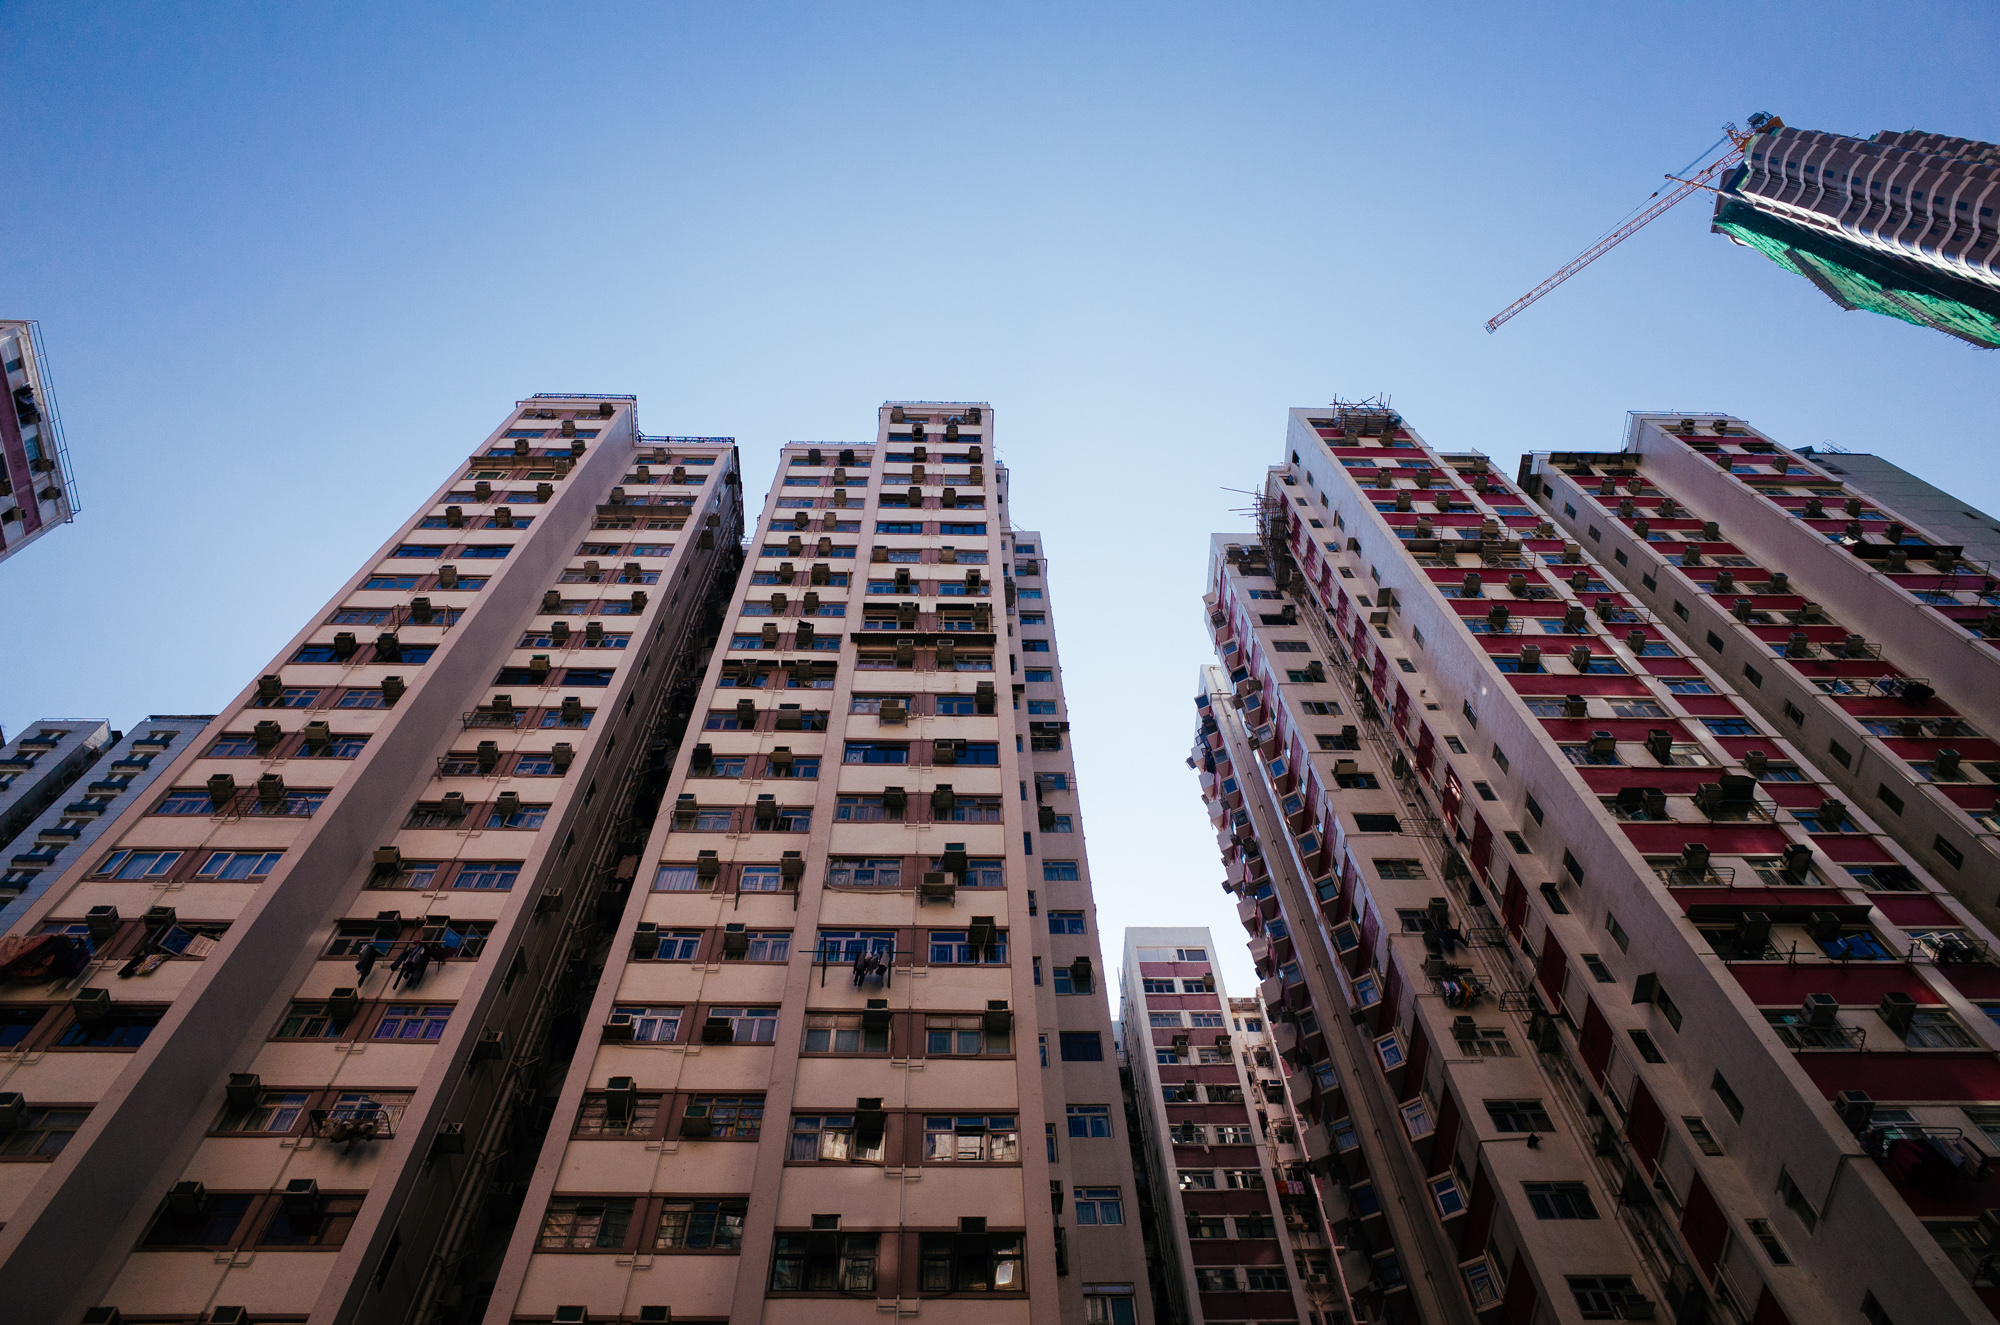 Hong Kong is a city of verticality, economic disparity, and constant construction.